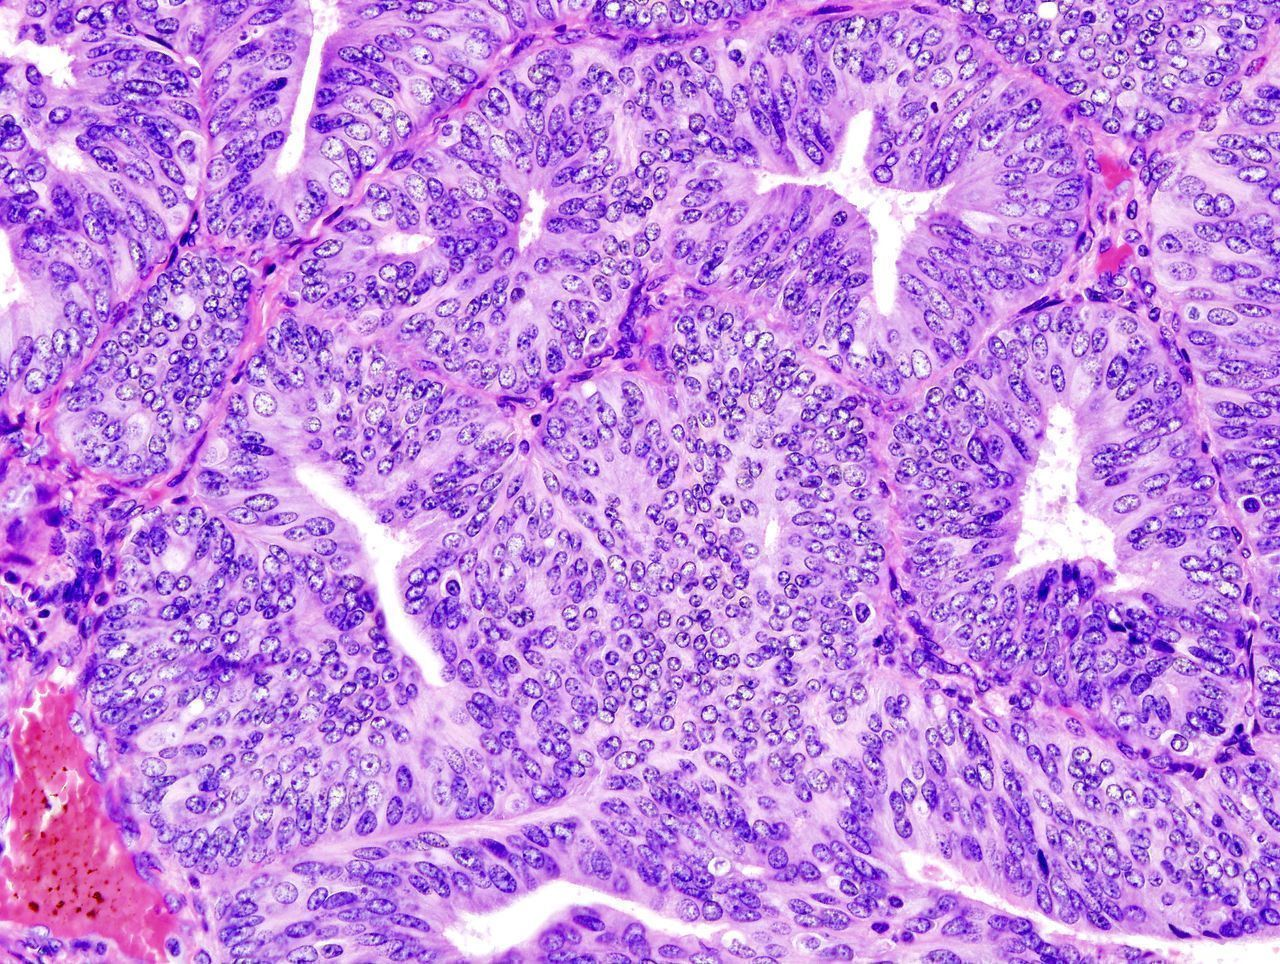 A histologic view of an endometrial adenocarcinoma showing many abnormal nuclei.